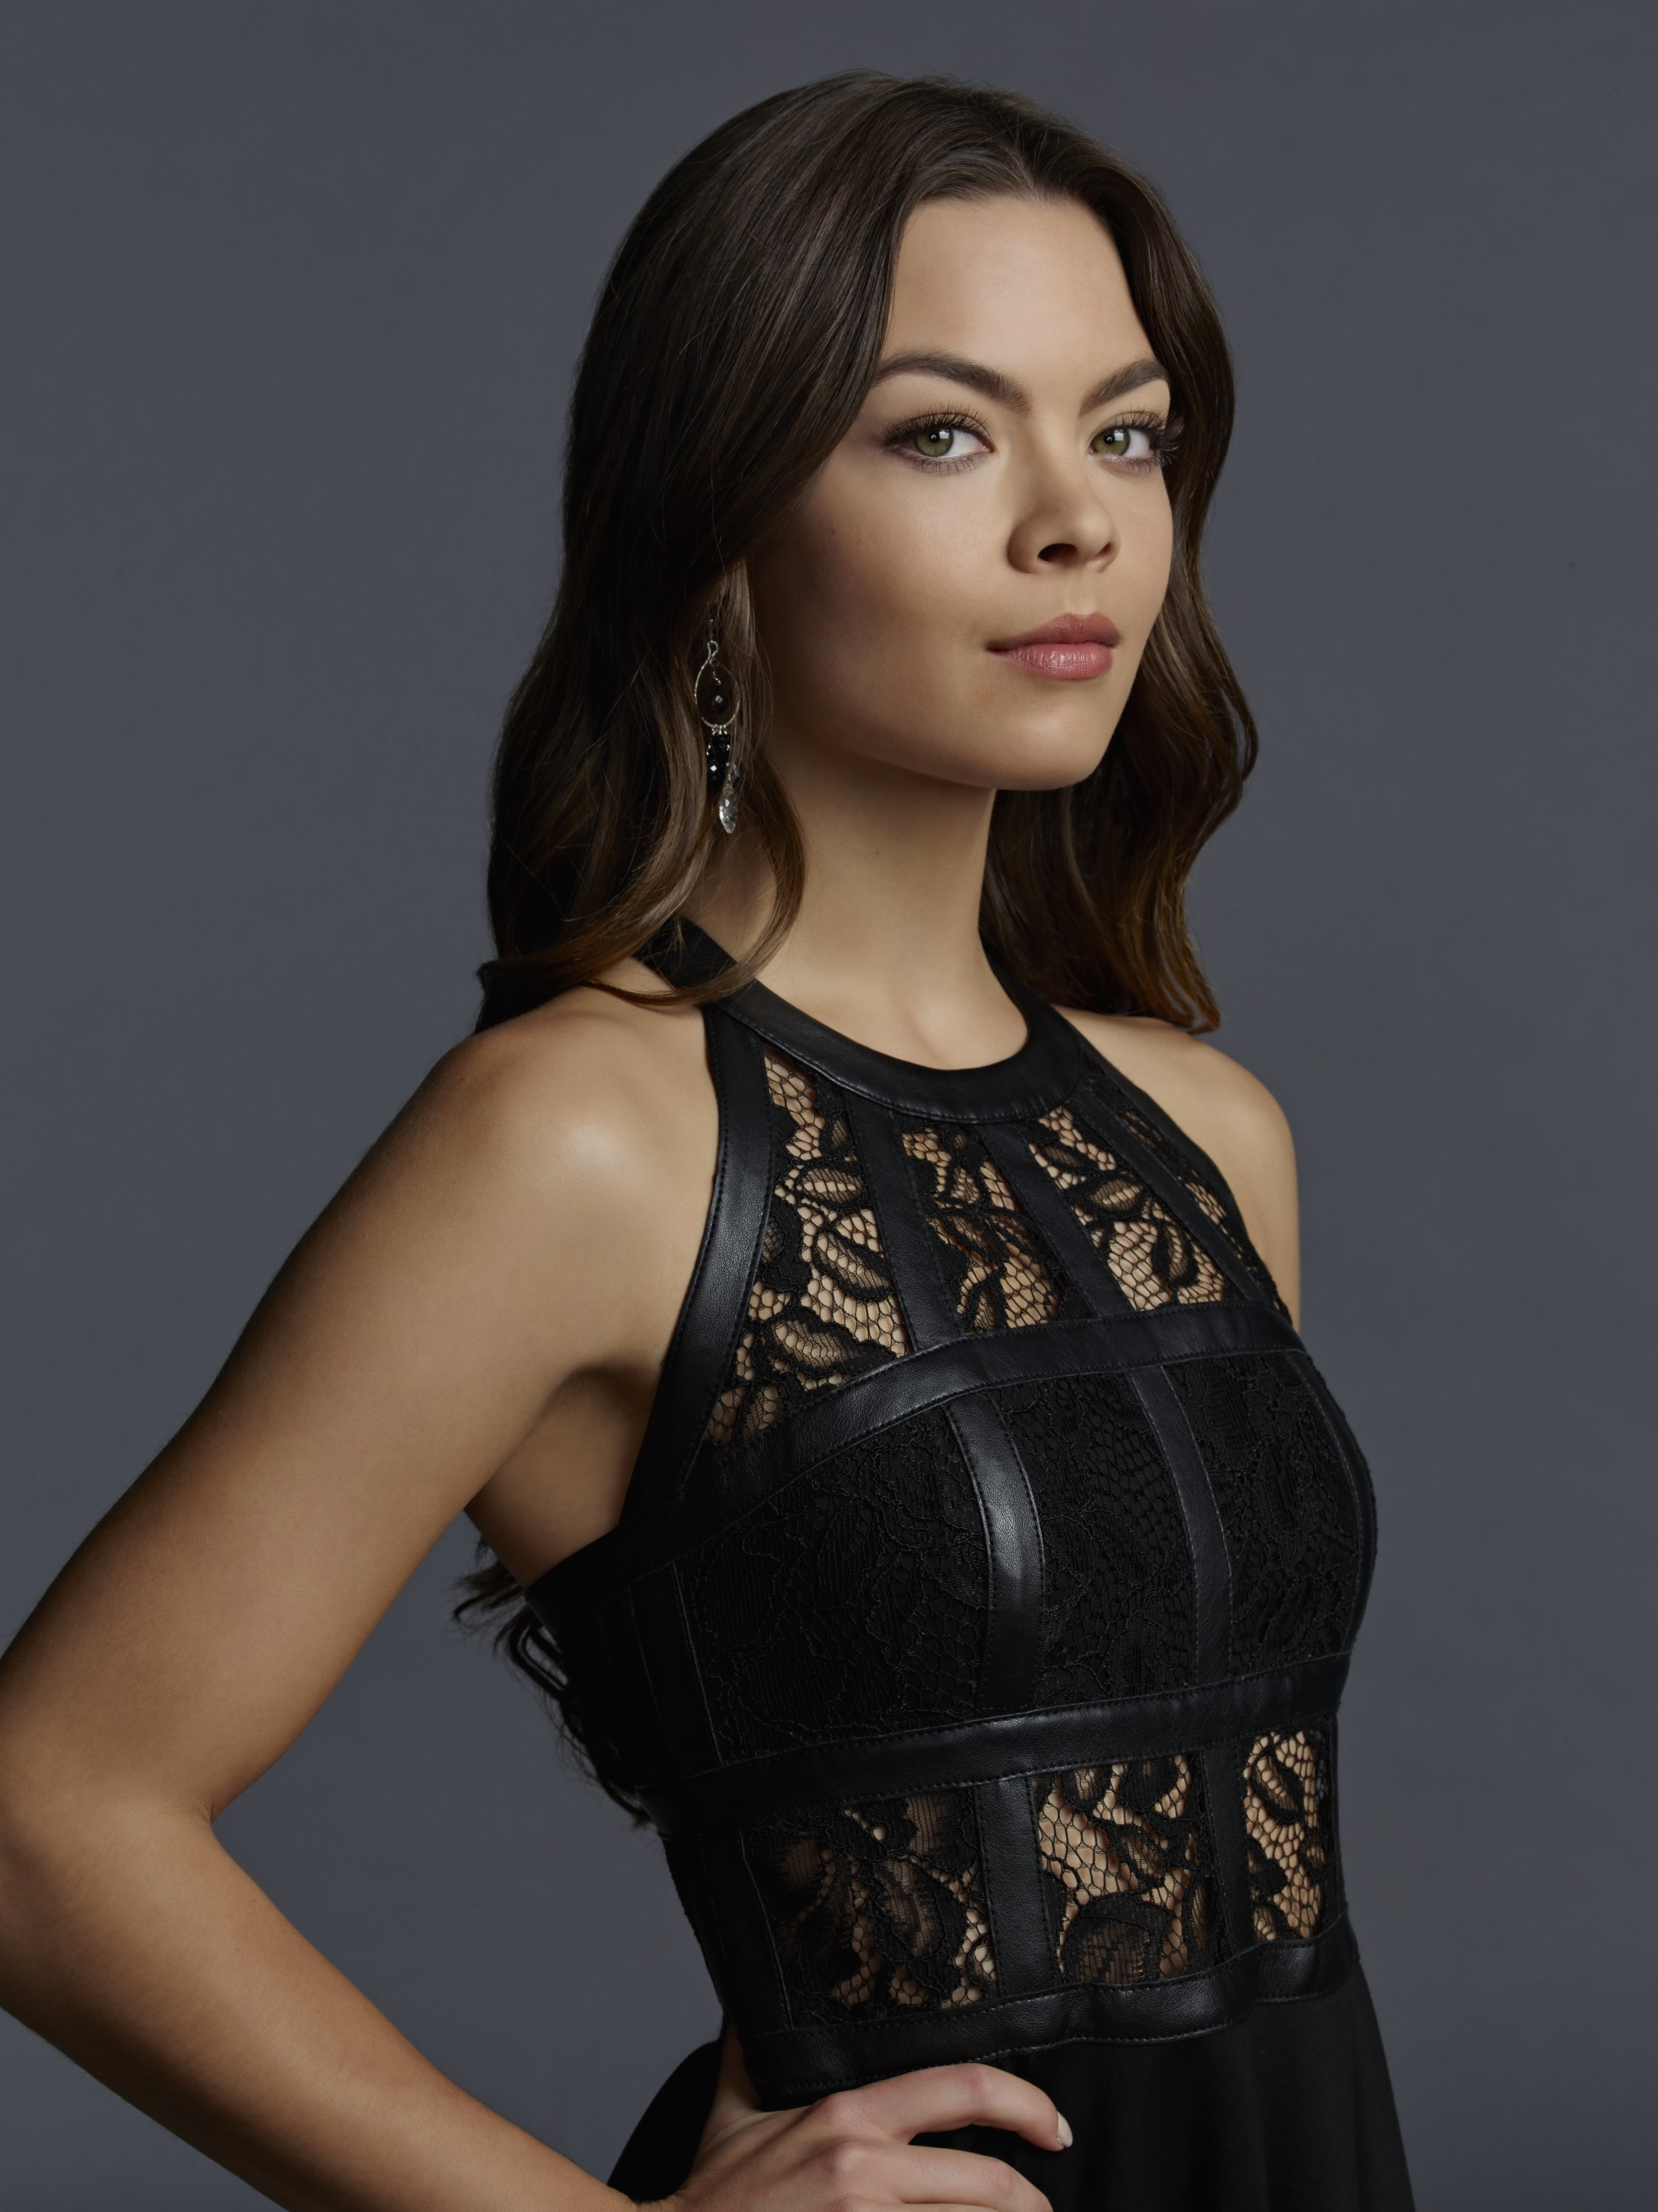 Scarlett Byrne naked (53 fotos), hot Feet, Instagram, braless 2018